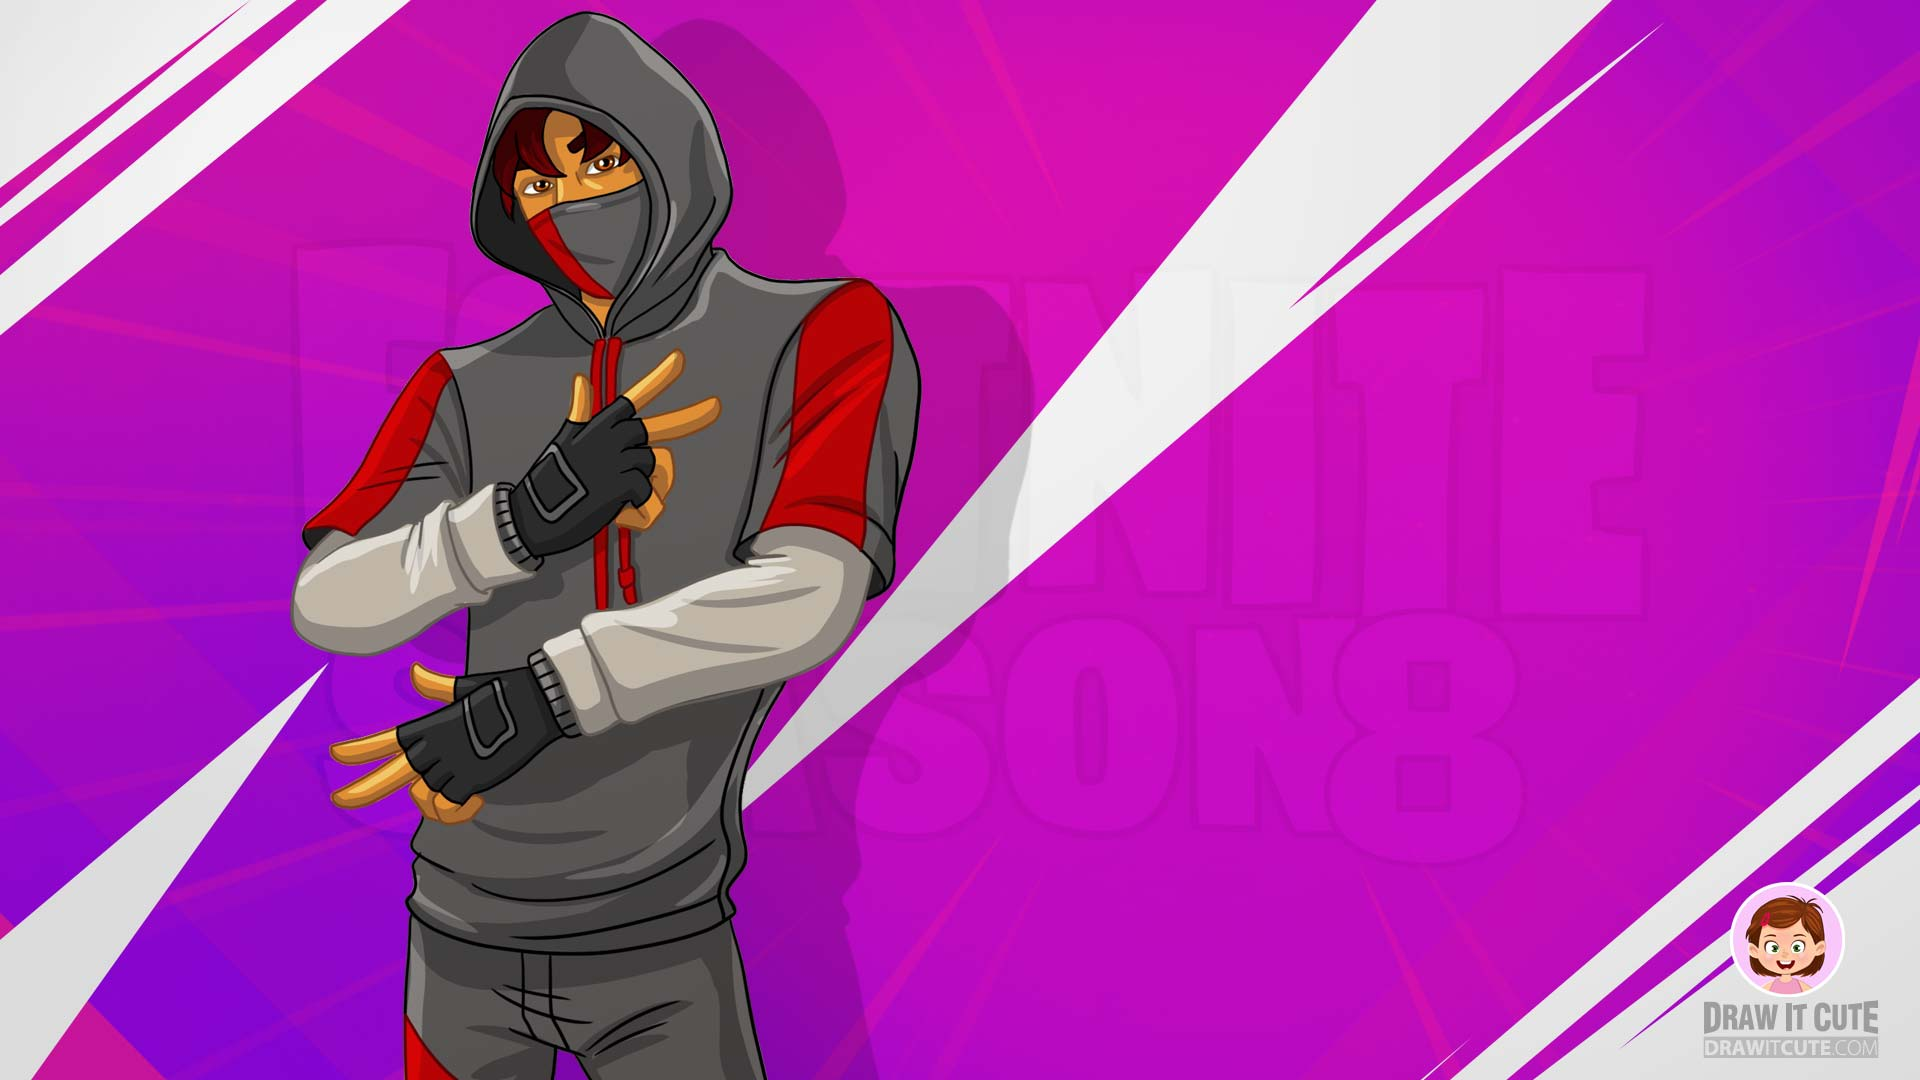 Full Screen Wallpaper Fortnite Ikonik